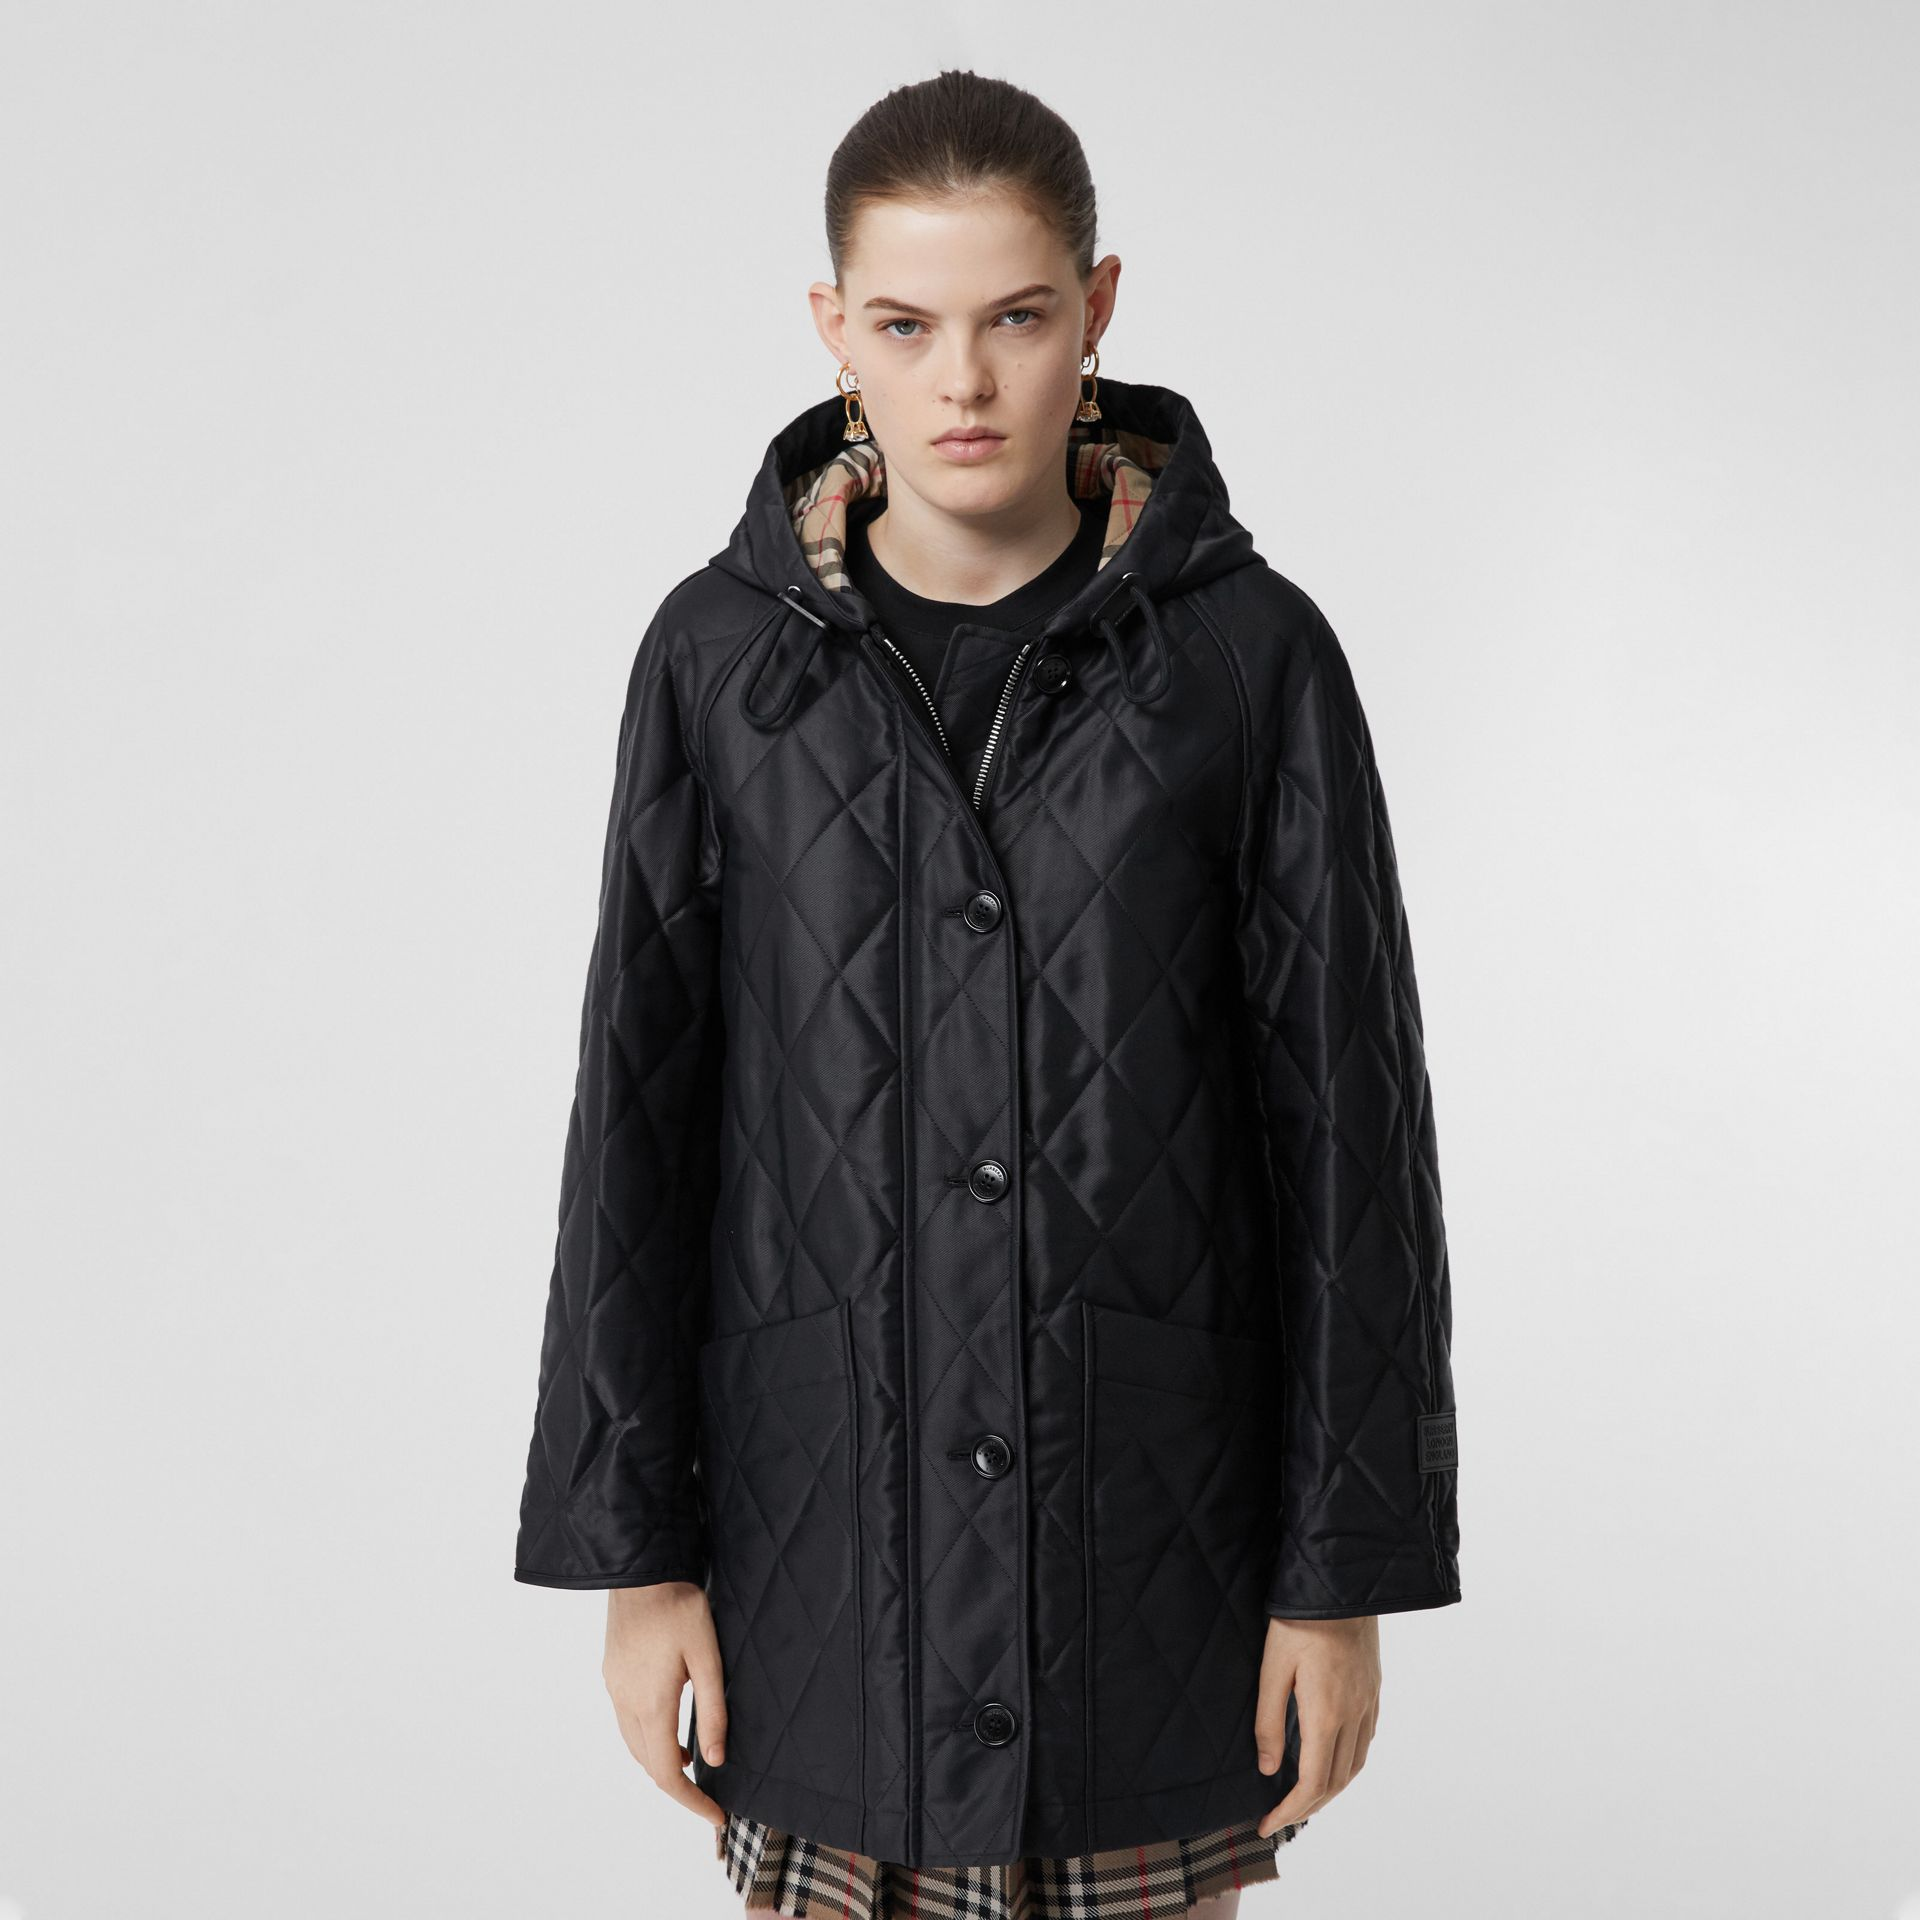 Diamond Quilted Cotton Hooded Coat in Black - Women | Burberry Hong Kong S.A.R - gallery image 5